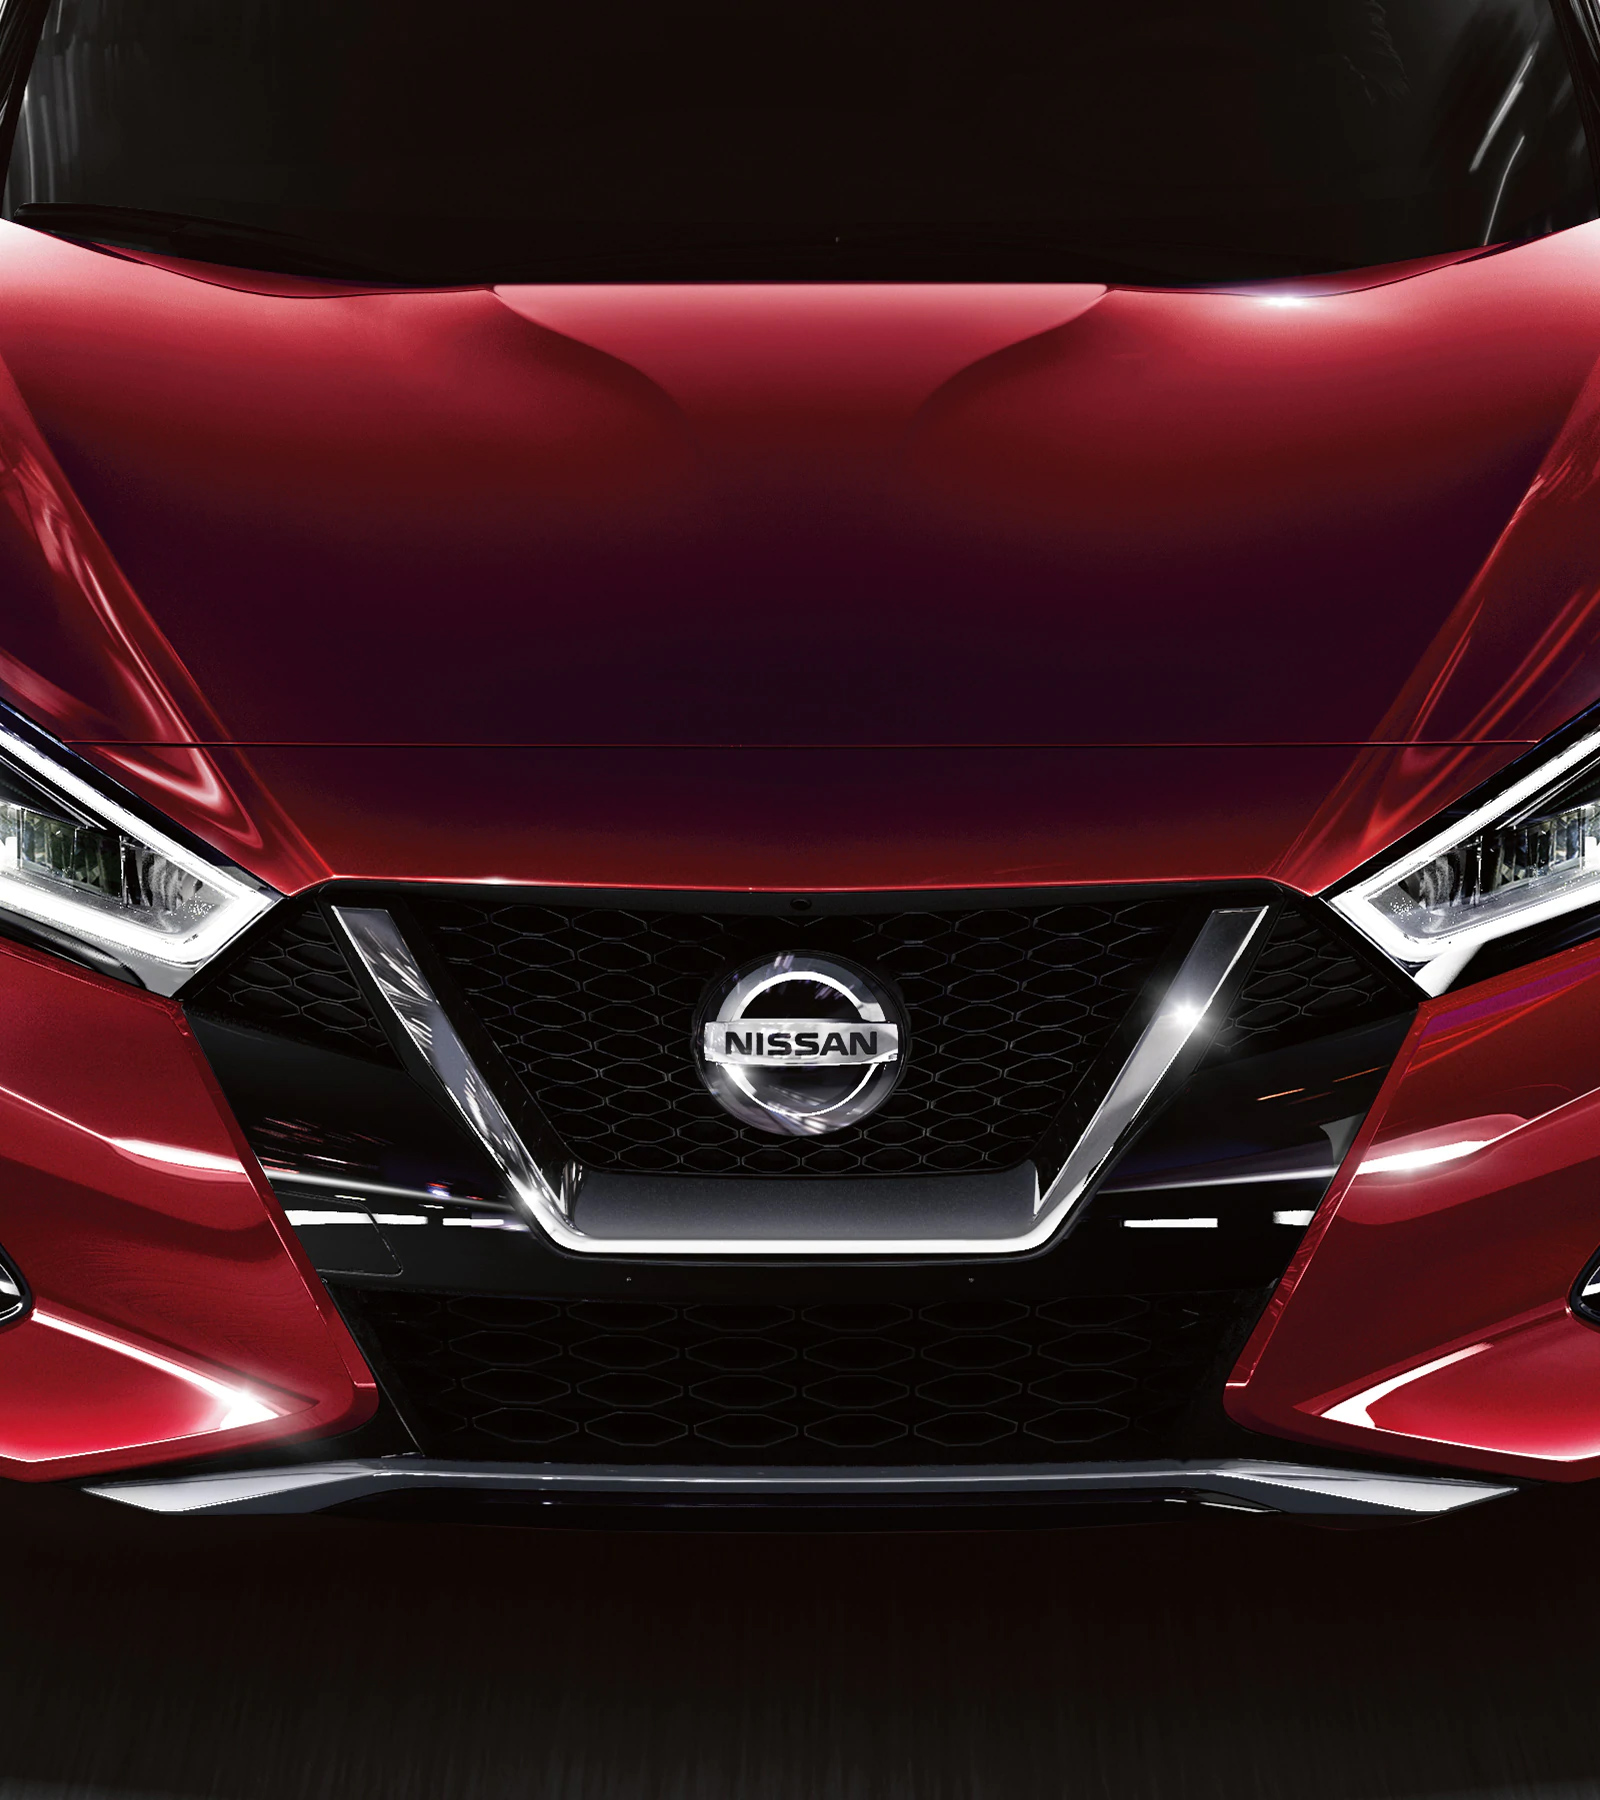 Nissan Maxima exterior finish in red